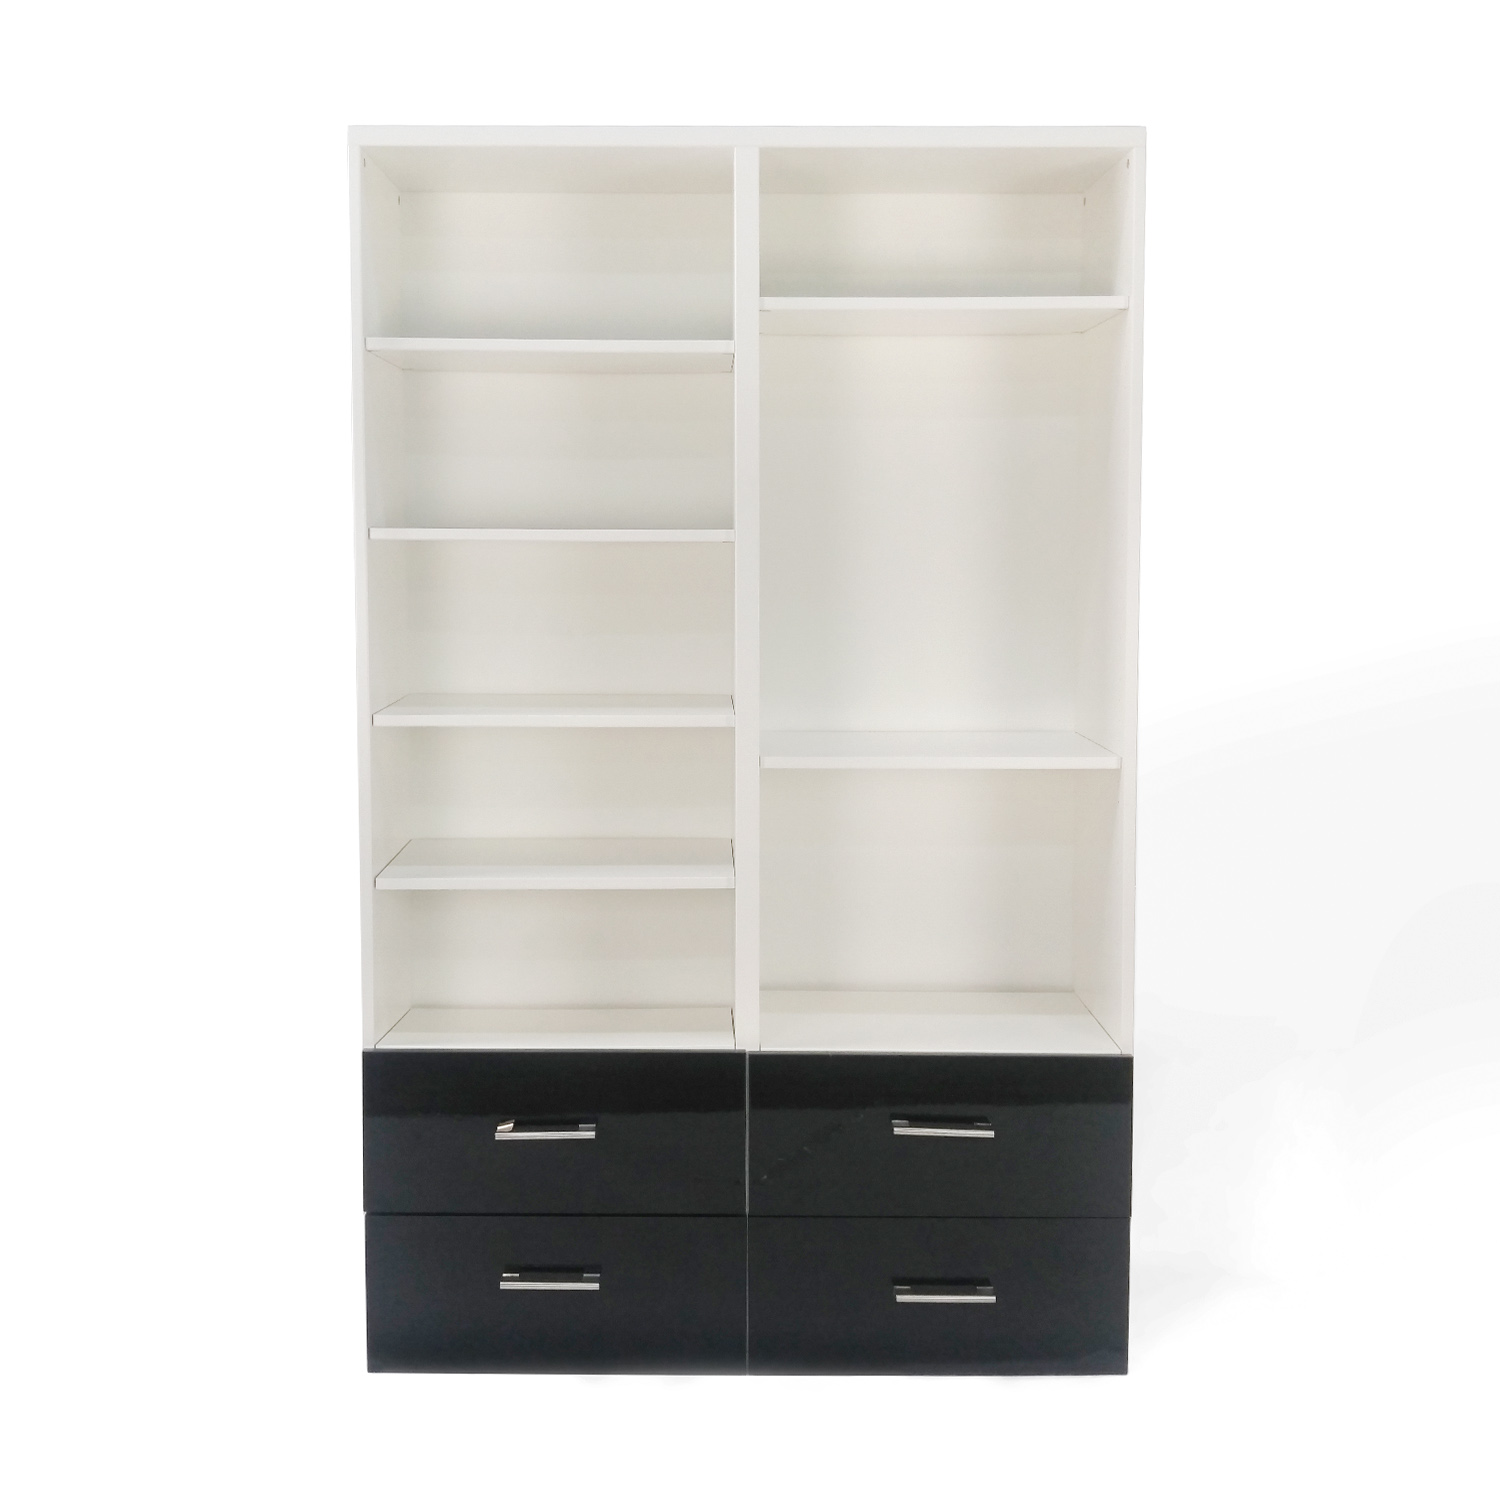 IKEA IKEA Double Shelf and Drawer Set price